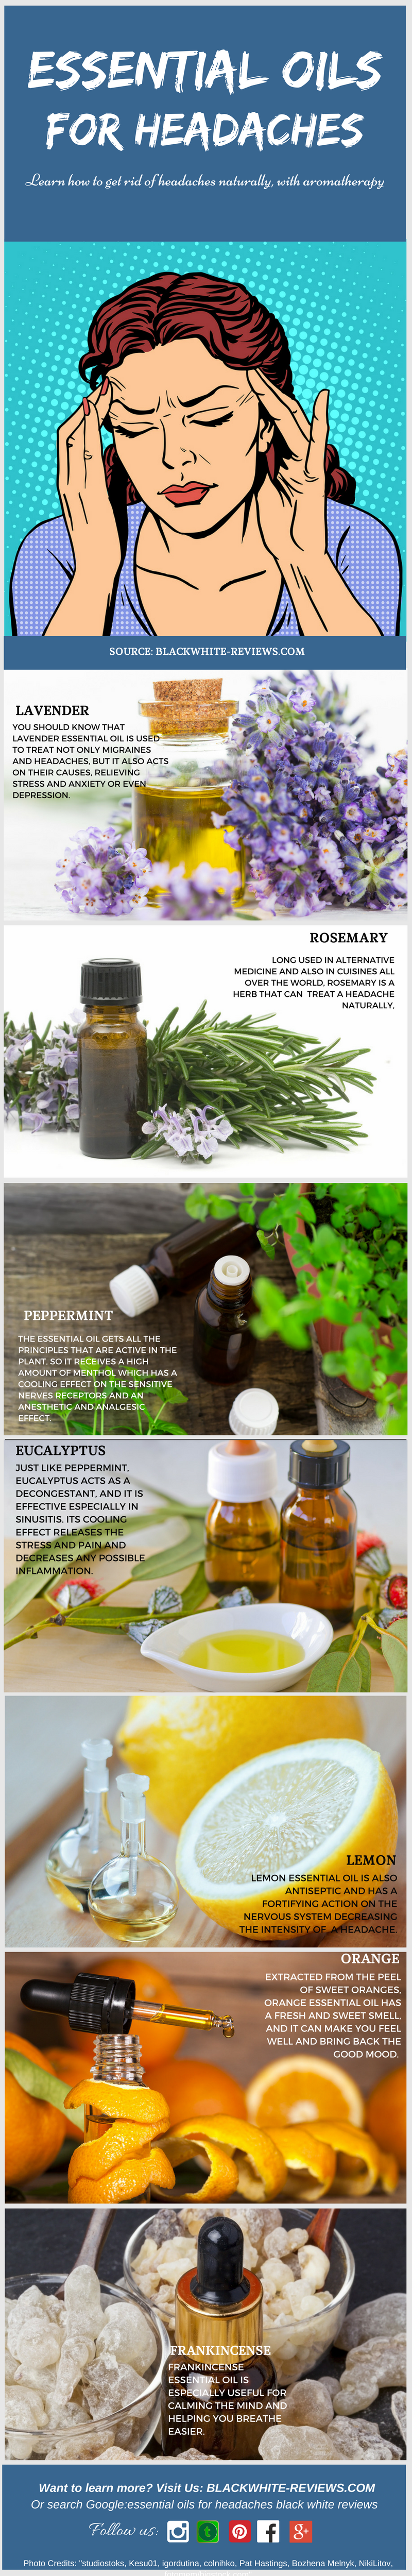 essential oils for headaches -infographic